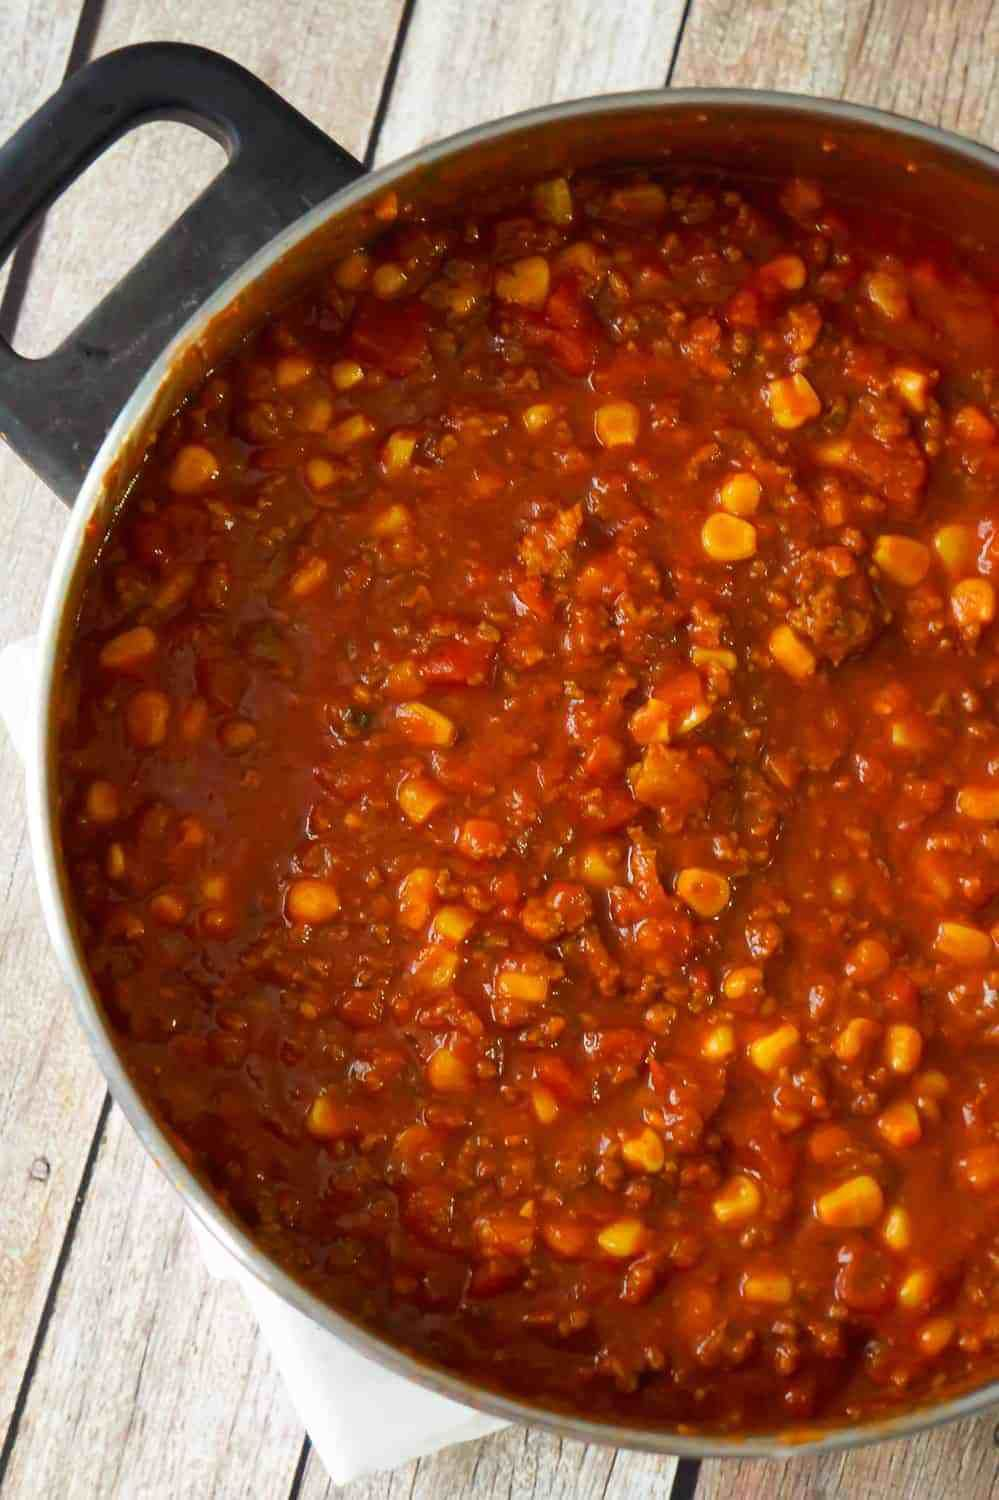 Easy No Bean Chili Is A Hearty Comfort Food Dish Loaded With Ground Beef And Hot Italian Sausage Me Chili Recipe Easy No Bean Chili Ground Chicken Chili Recipe